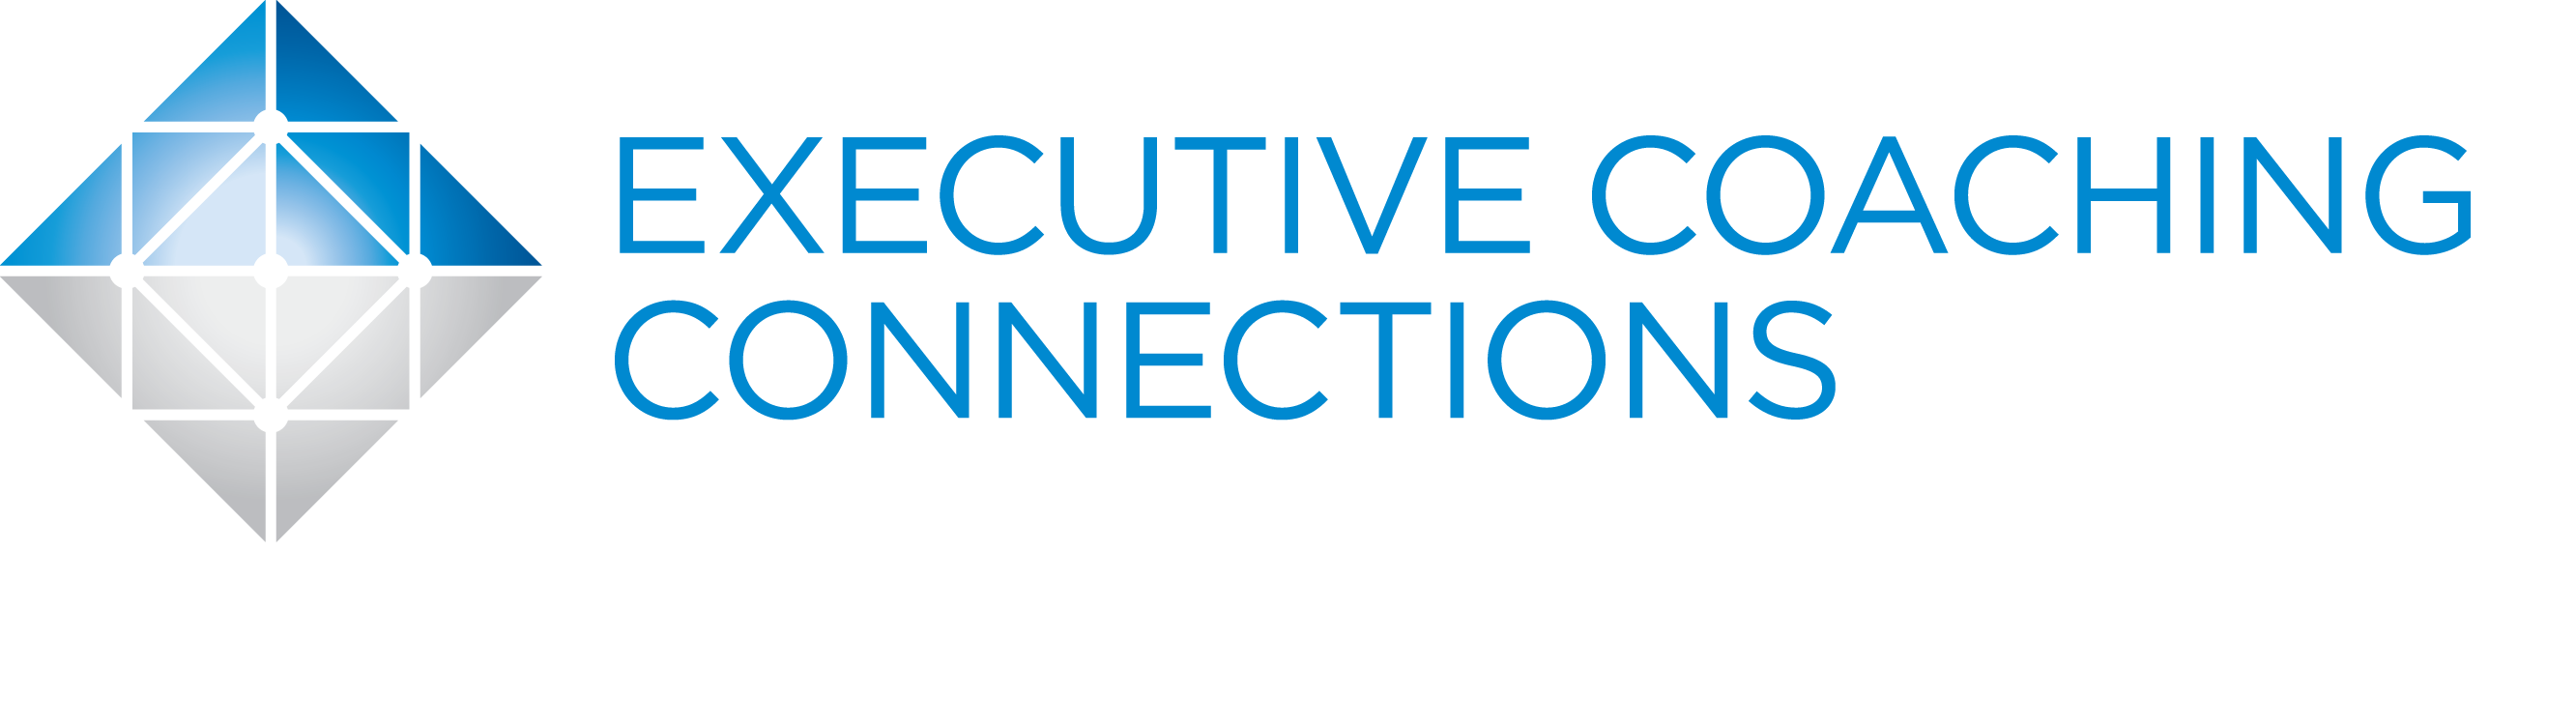 Executive Coaching Connections